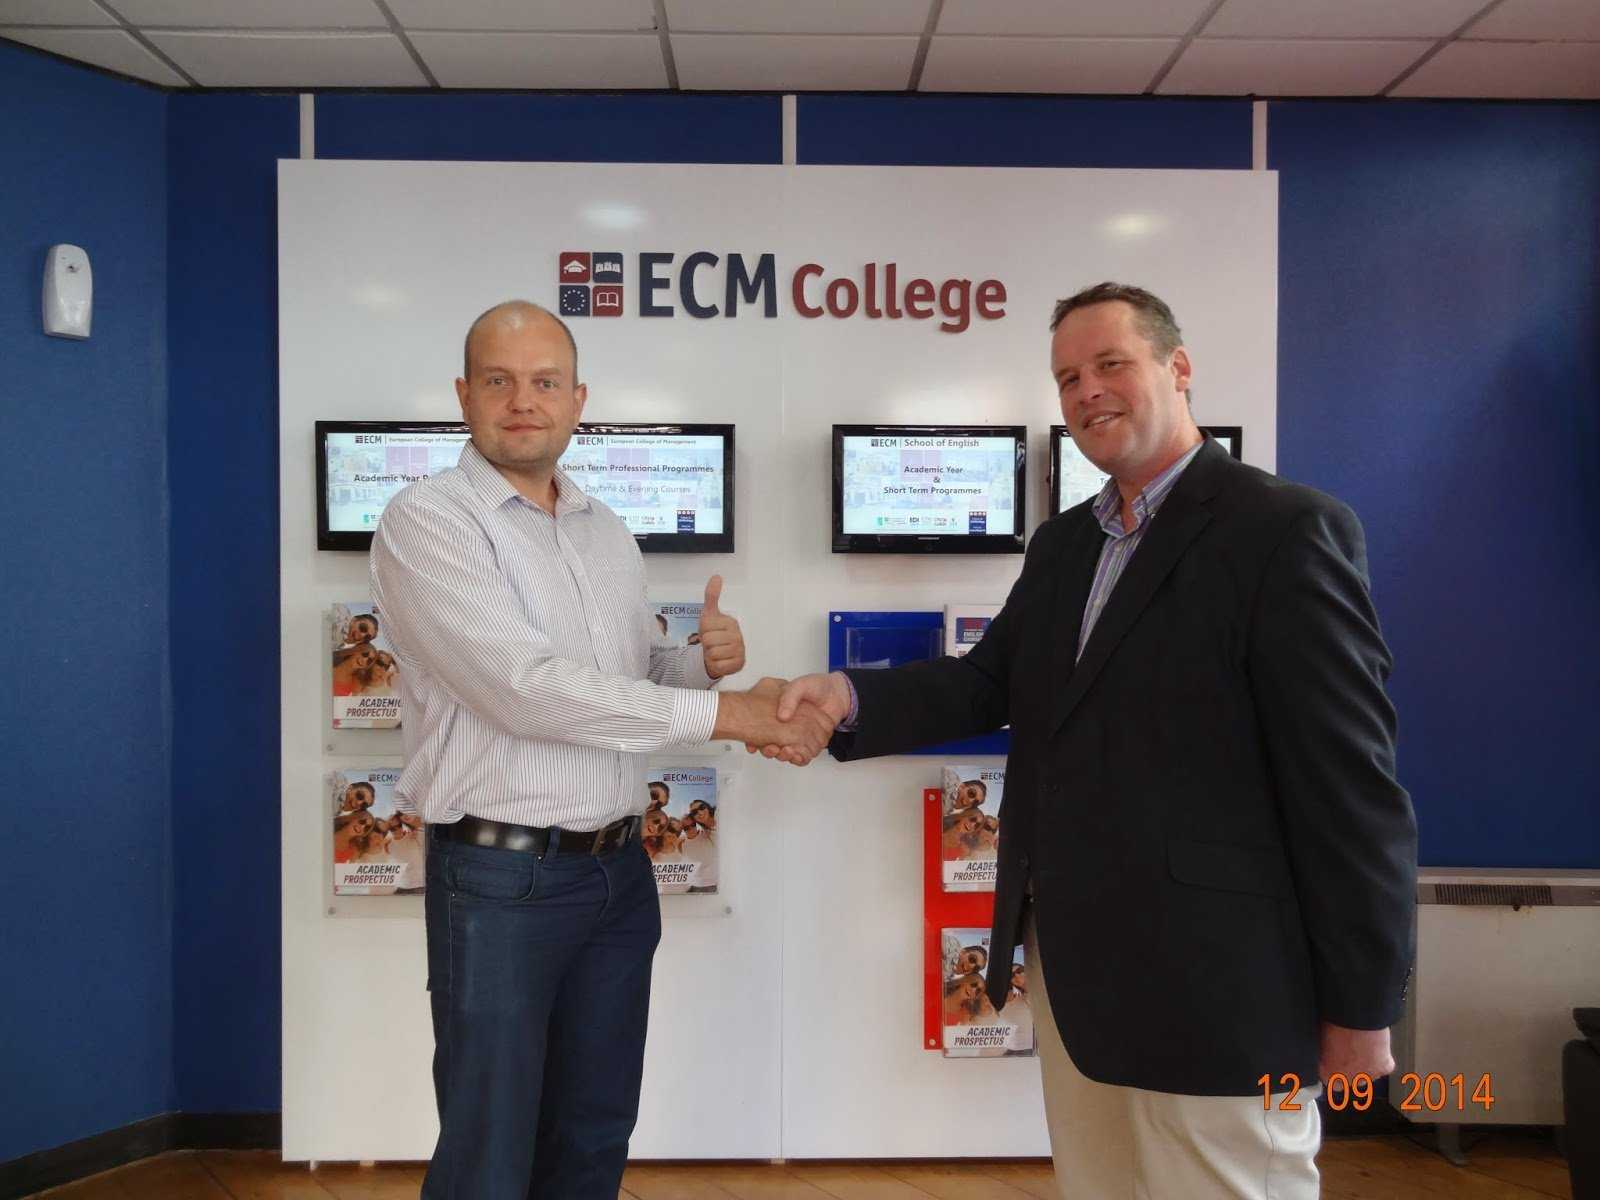 Oleksii Pieshkov at ECM College, Dublin, Ireland, with it's Director in 2014.